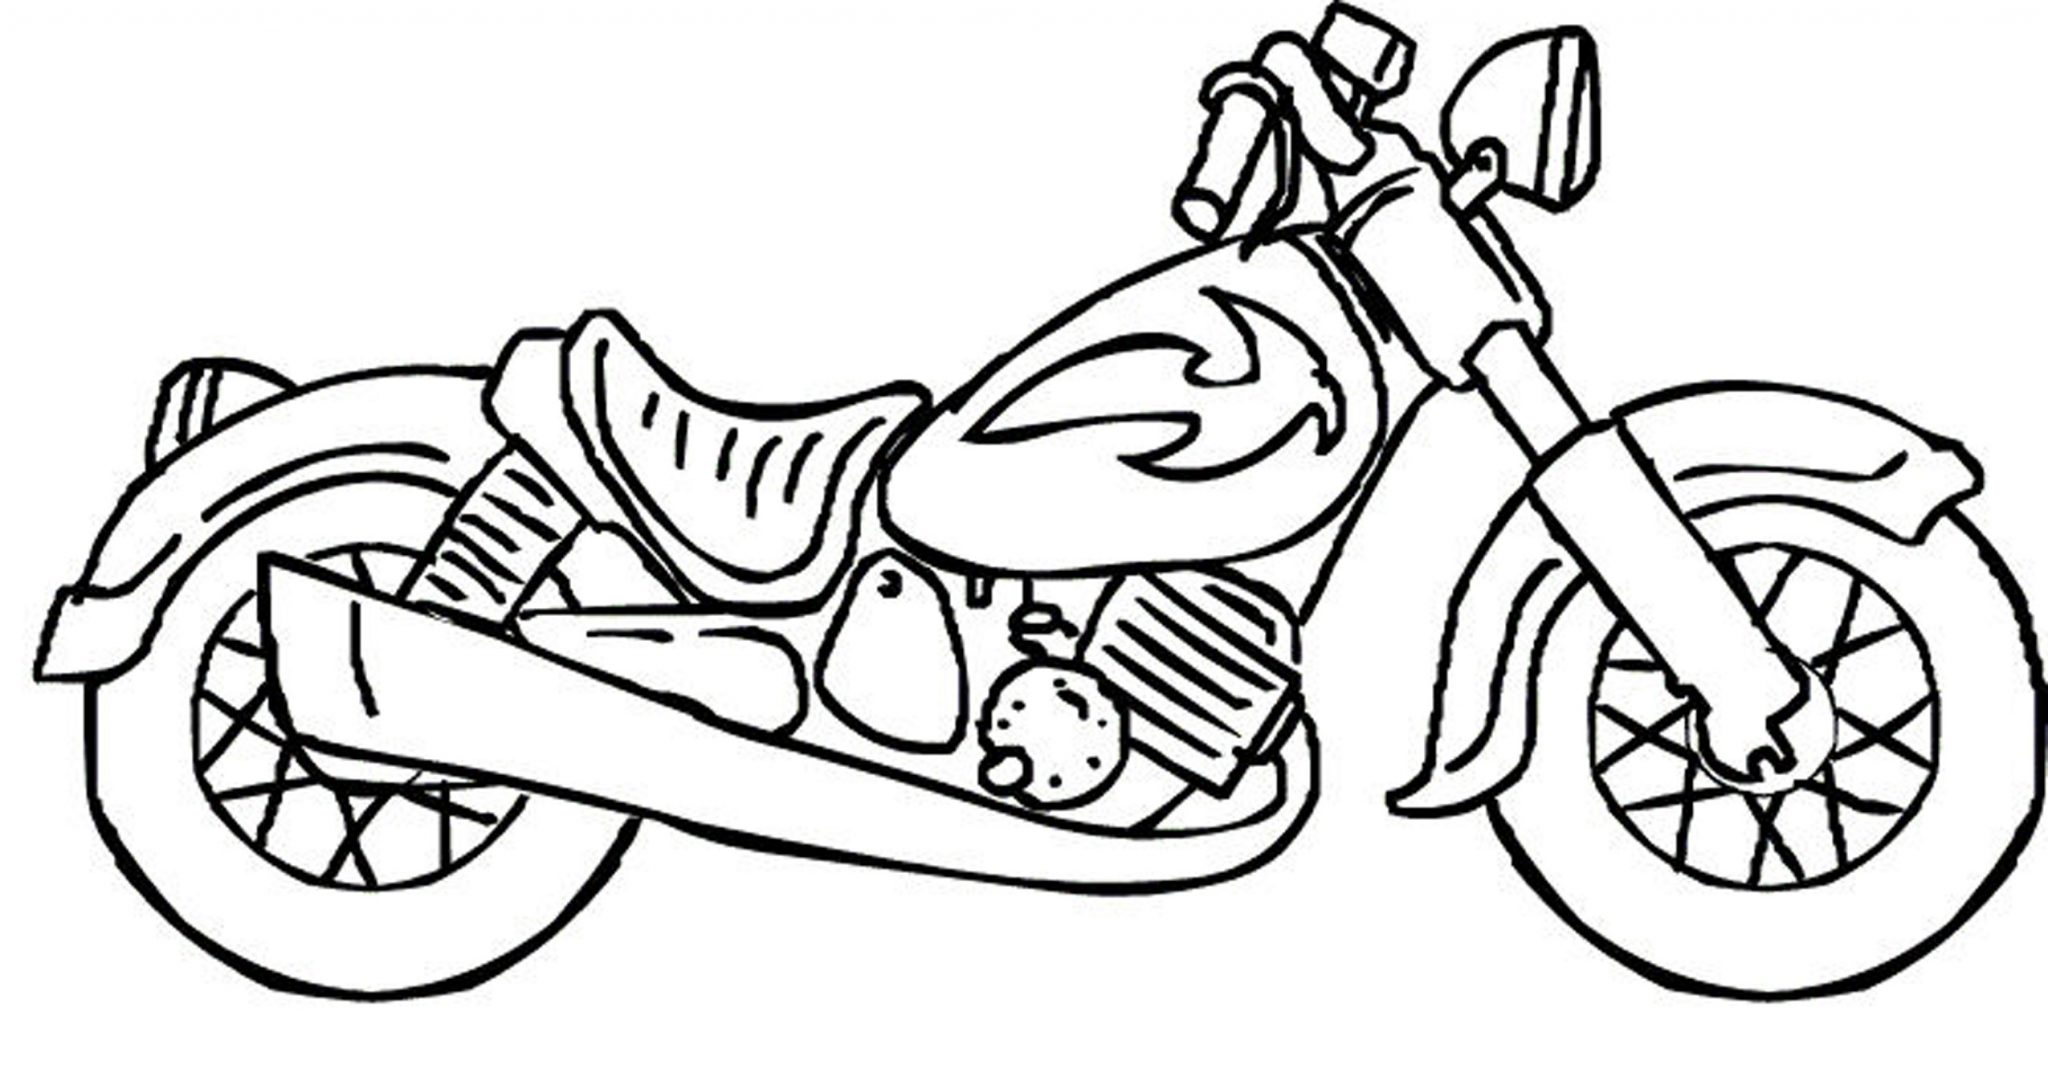 boy-coloring-pages-for-kids-motorcycle | | BestAppsForKids.com